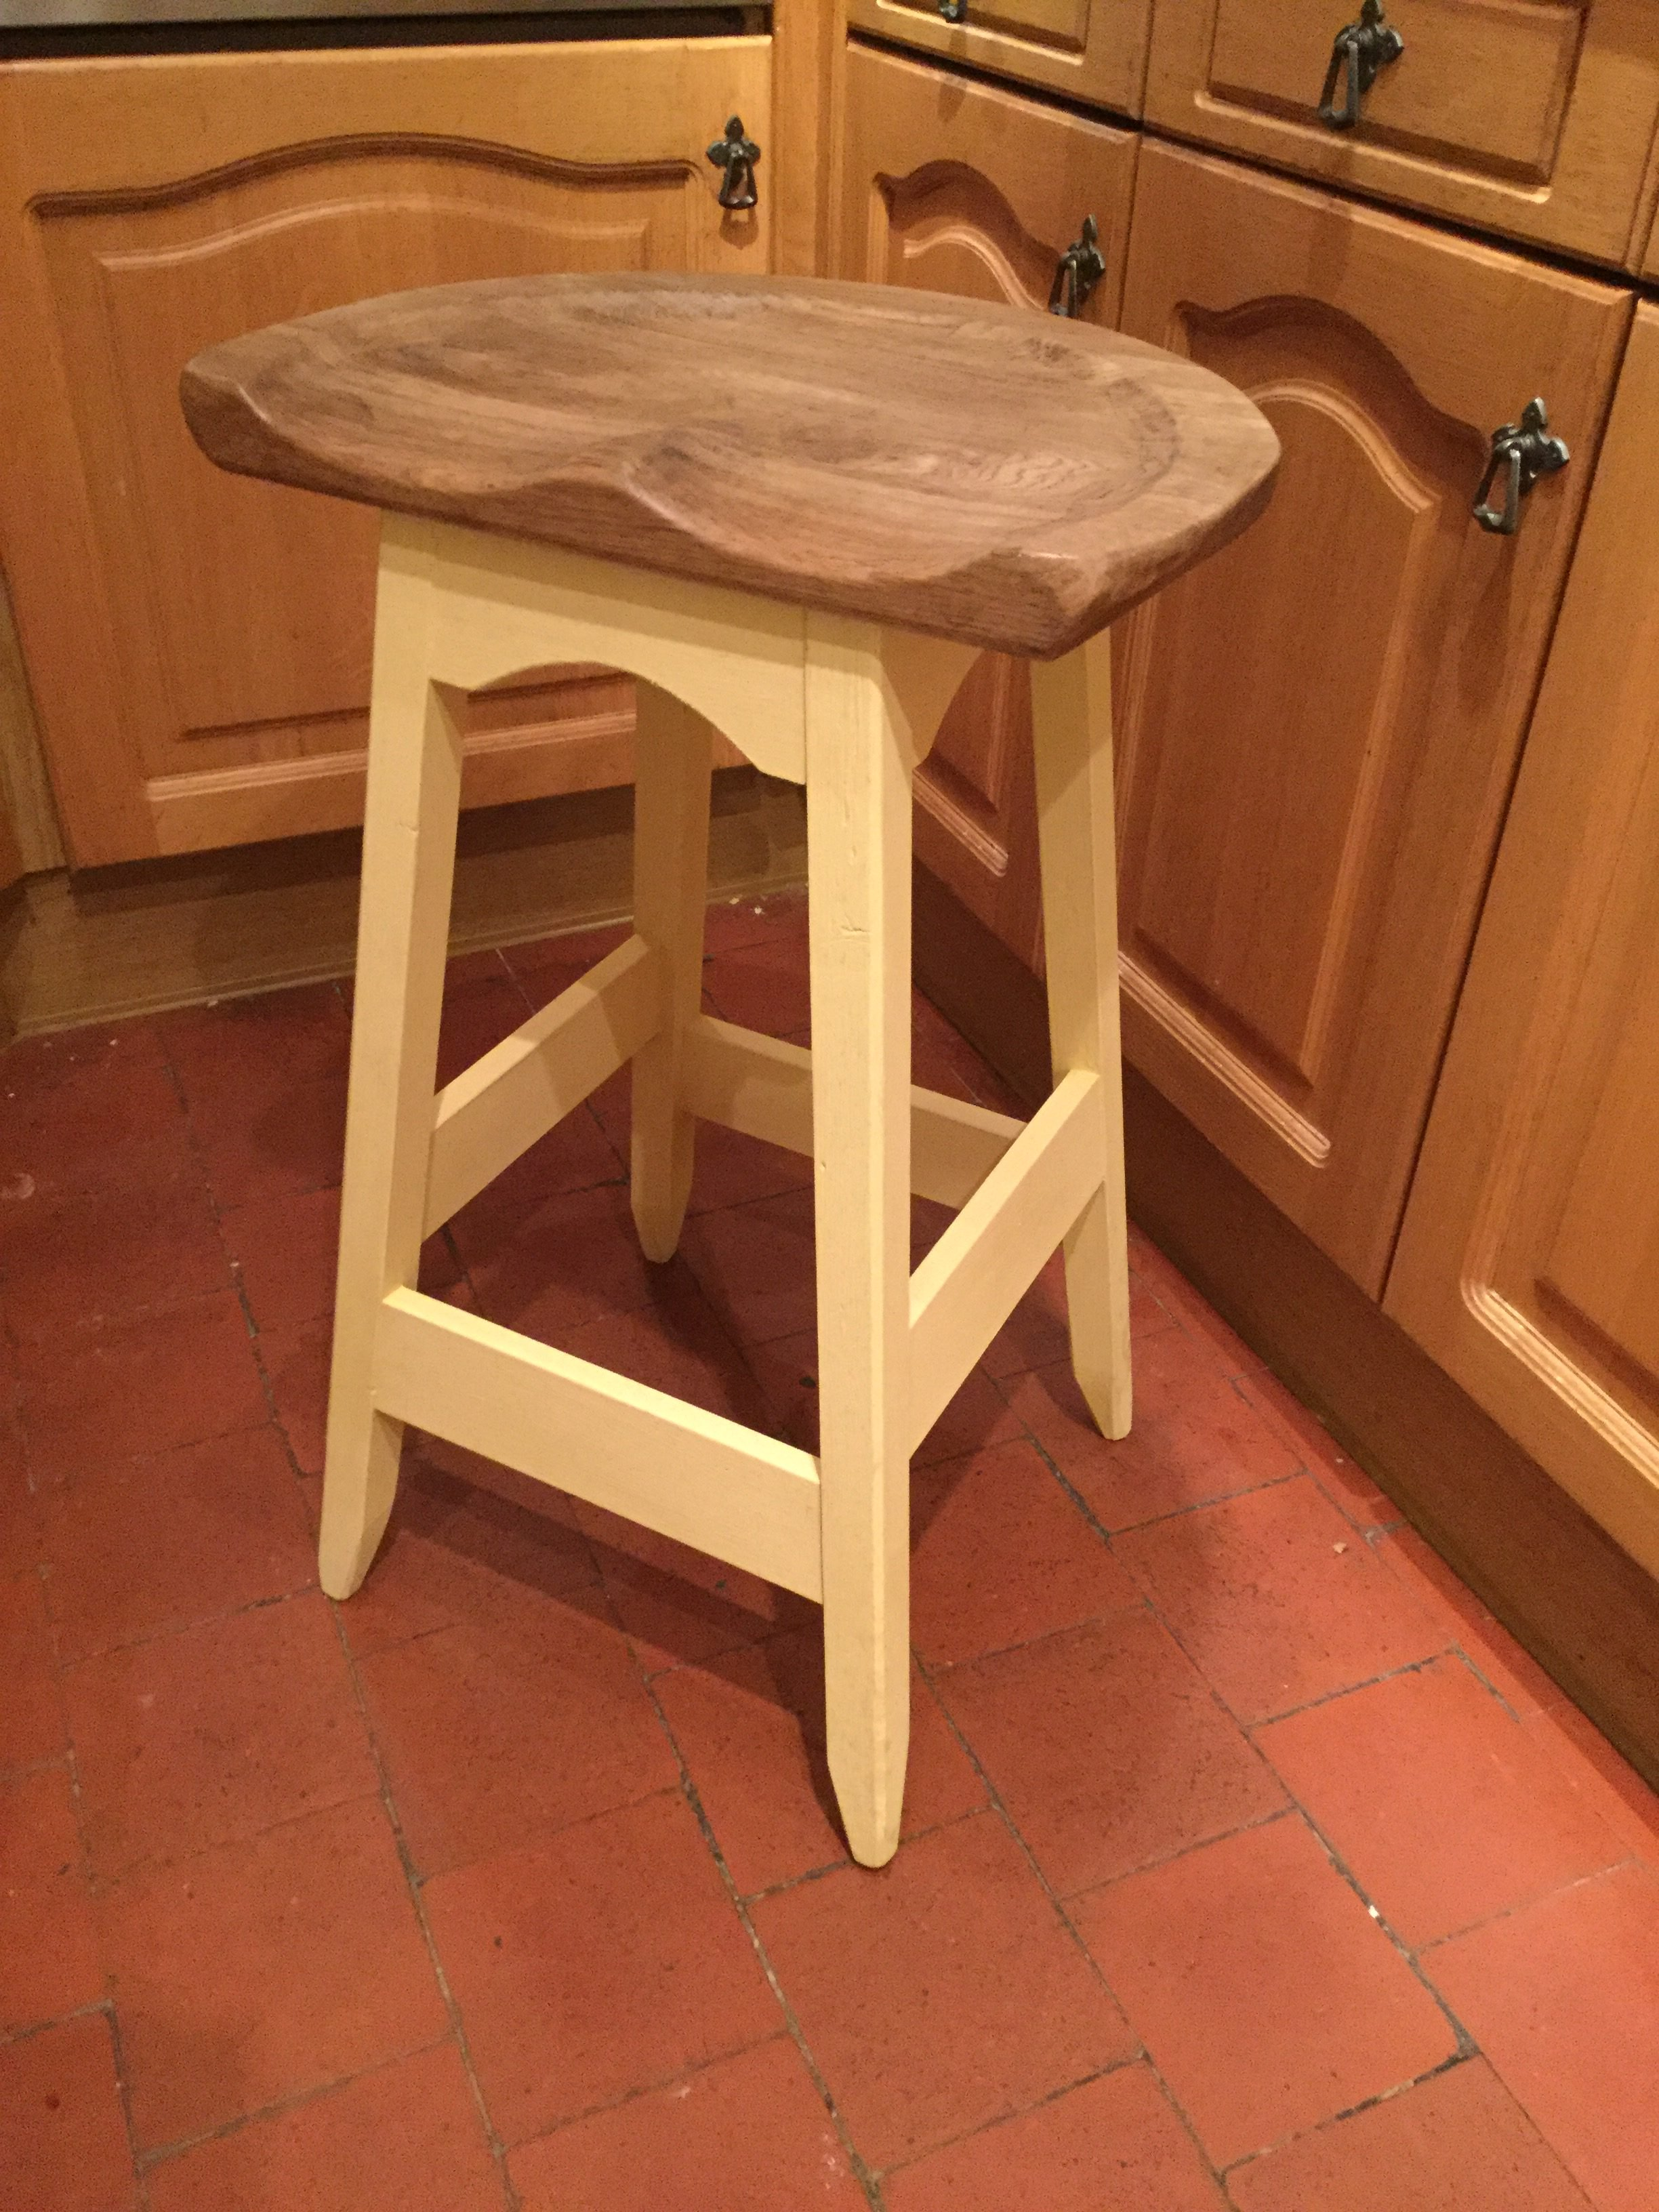 Bench Stool Gallery - Woodworking Masterclasses